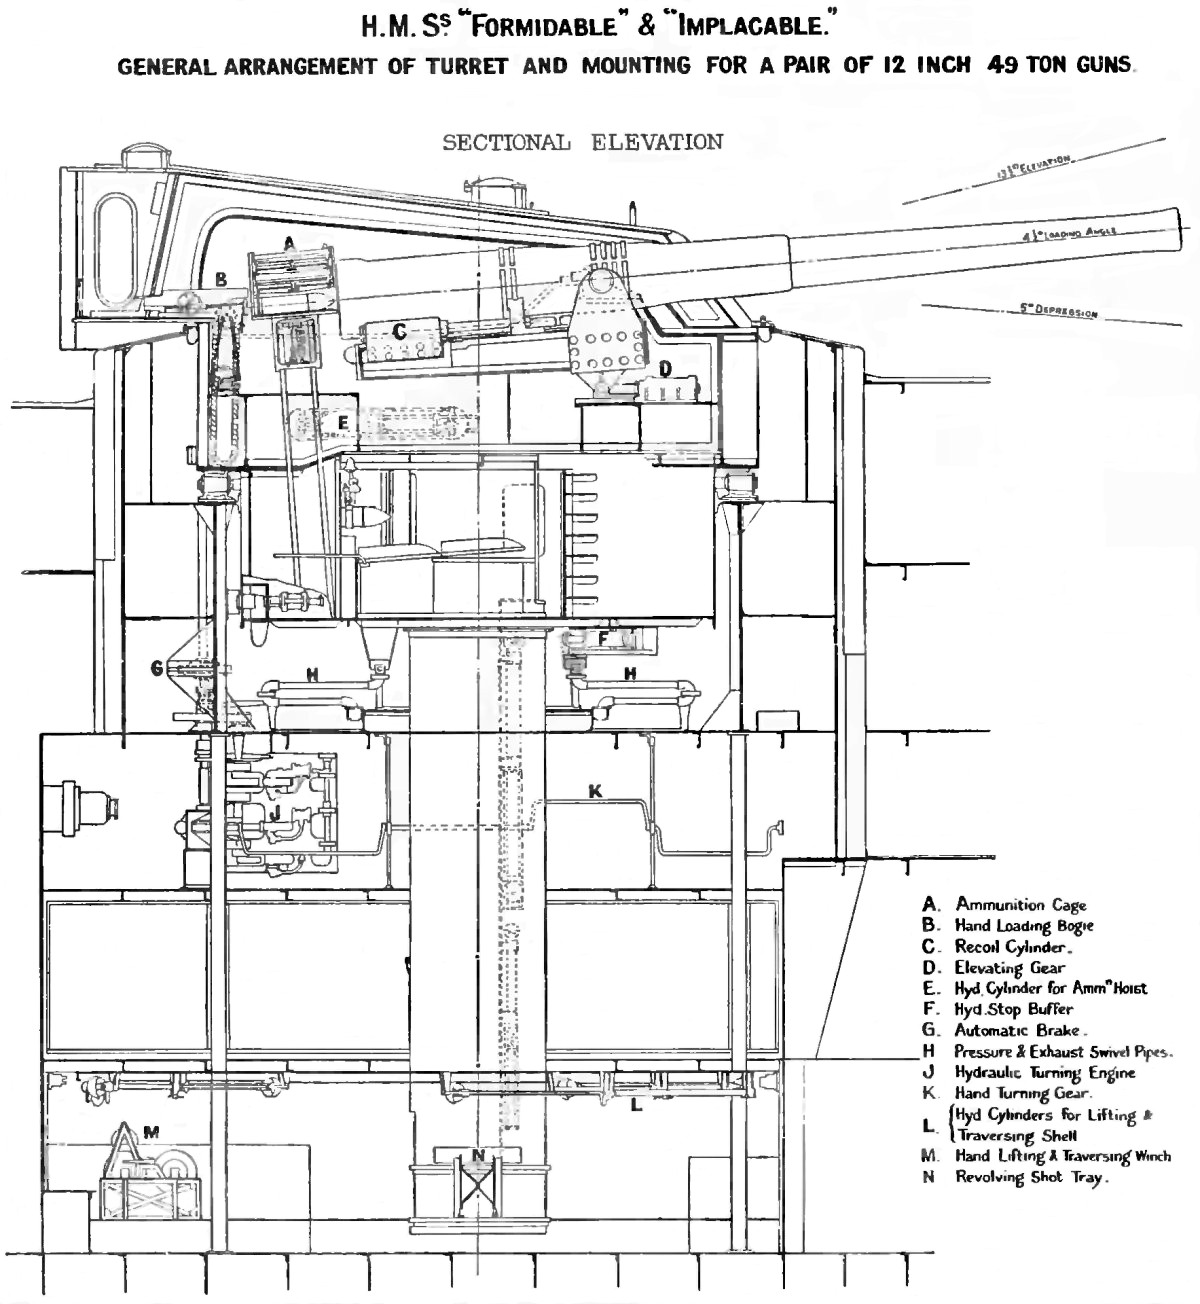 File Formidable Class 12 Inch Gun Turret Right Elevation